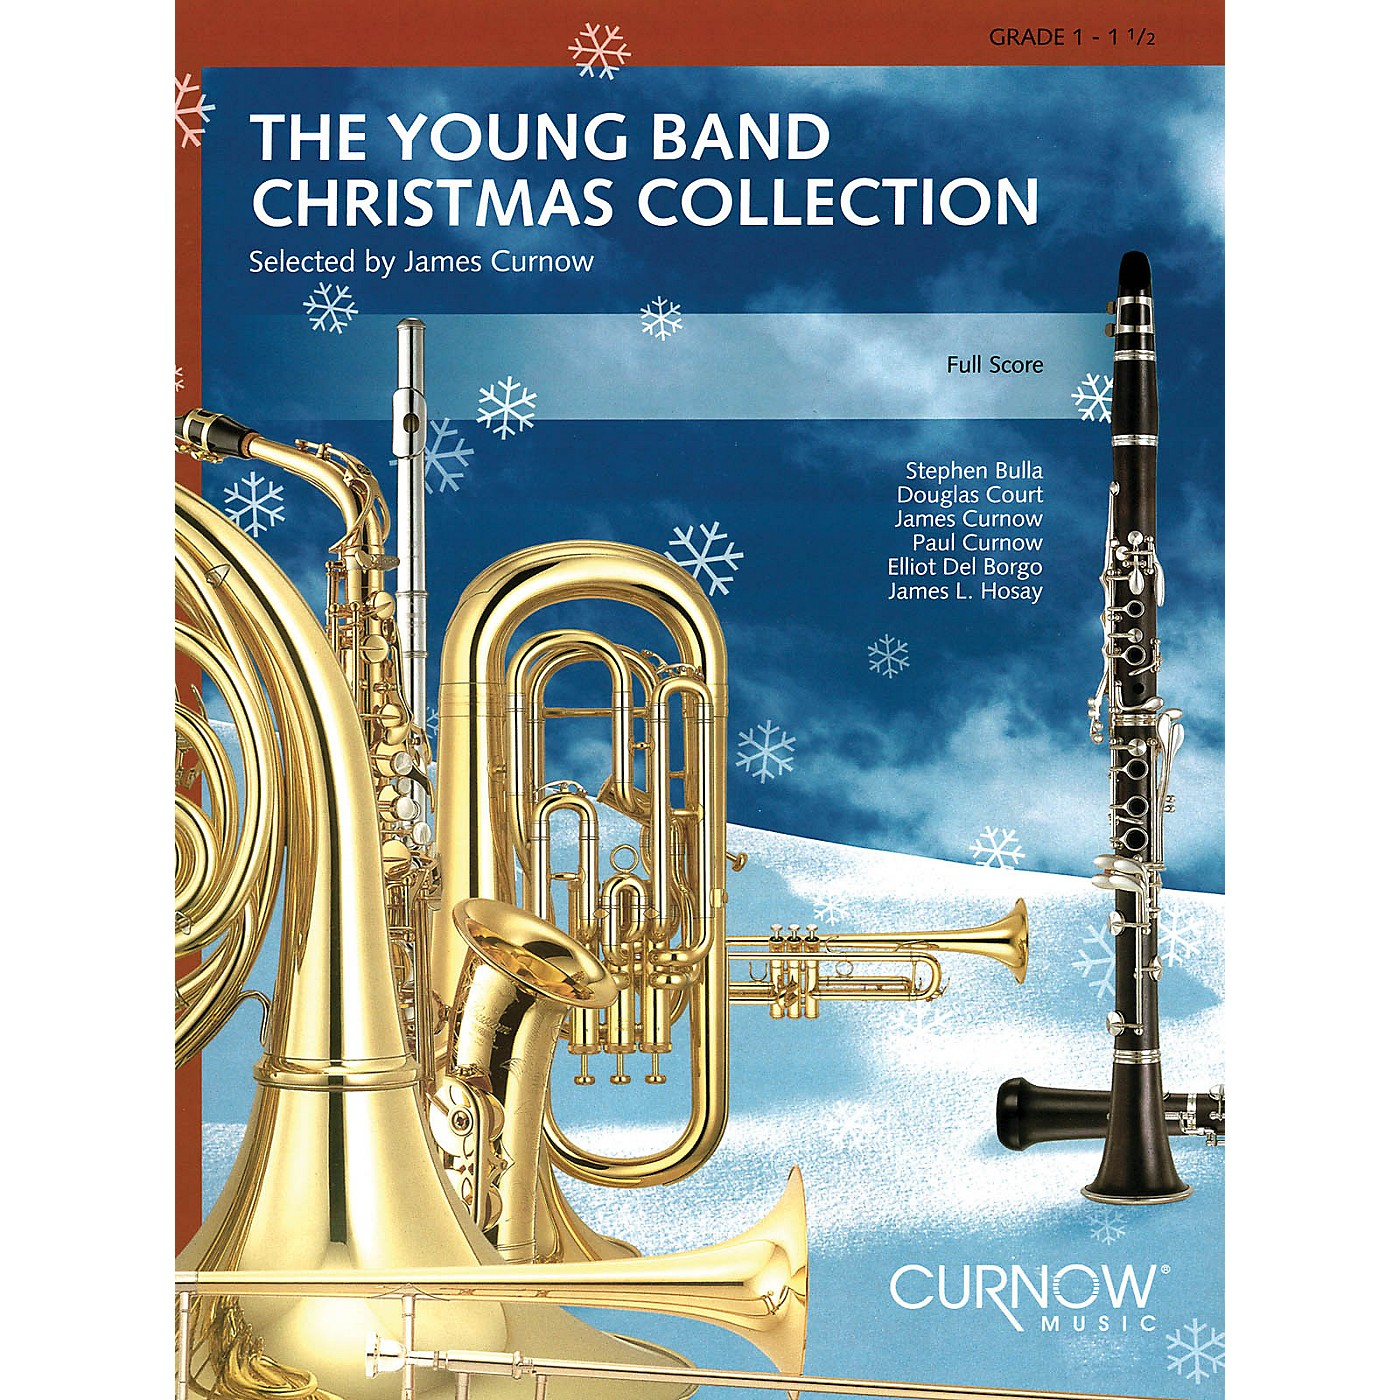 Curnow Music Young Band Christmas Collection (Grade 1.5) (Trumpet 2) Concert Band thumbnail